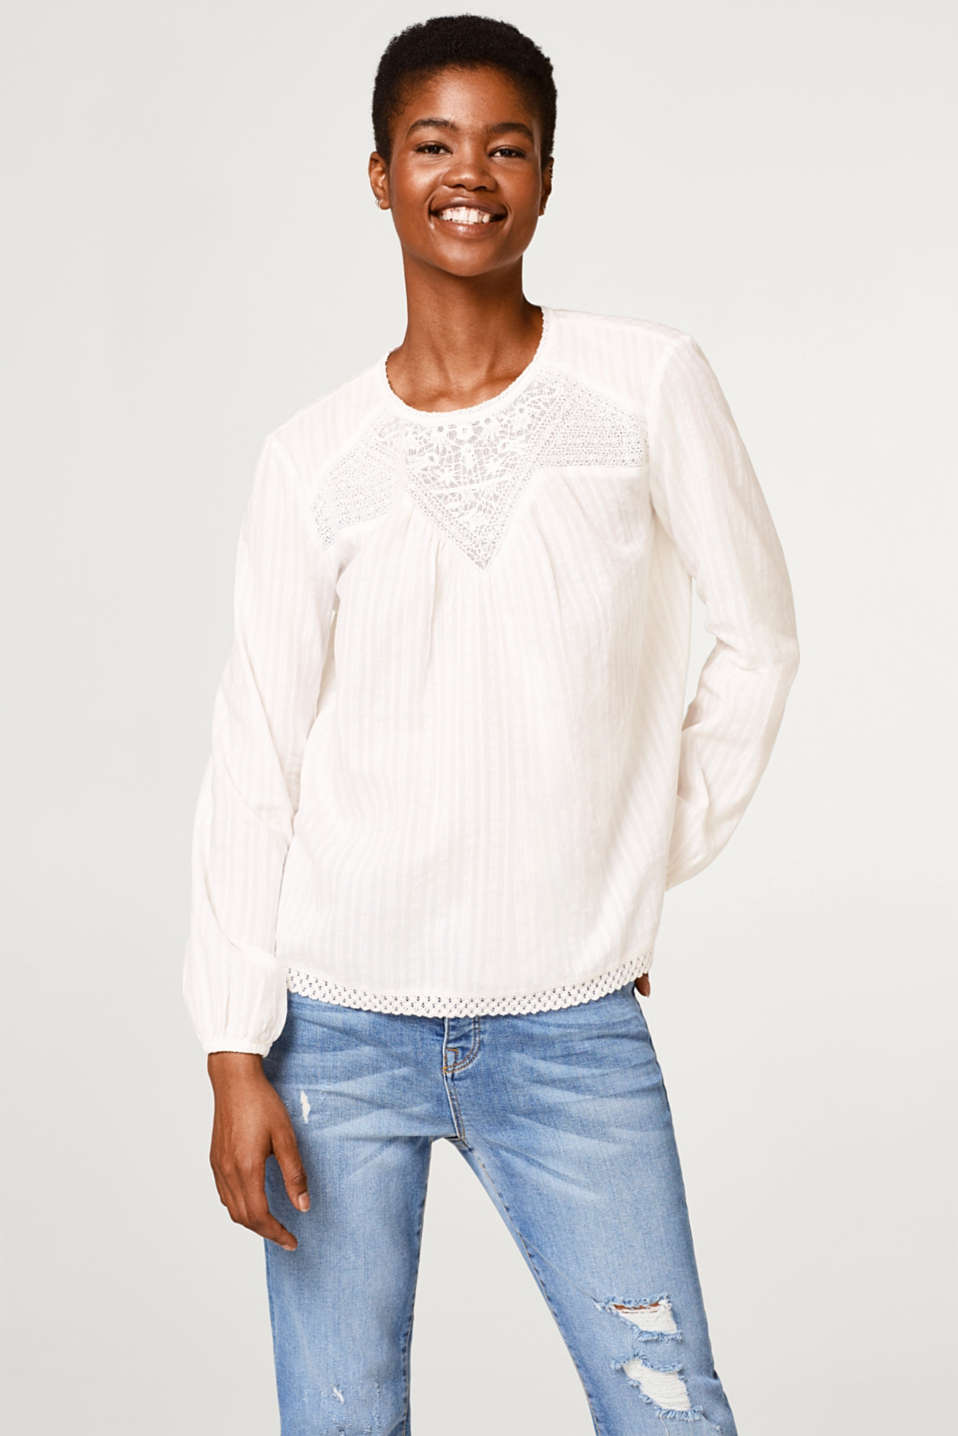 Esprit - Blouse with lace, made of cotton